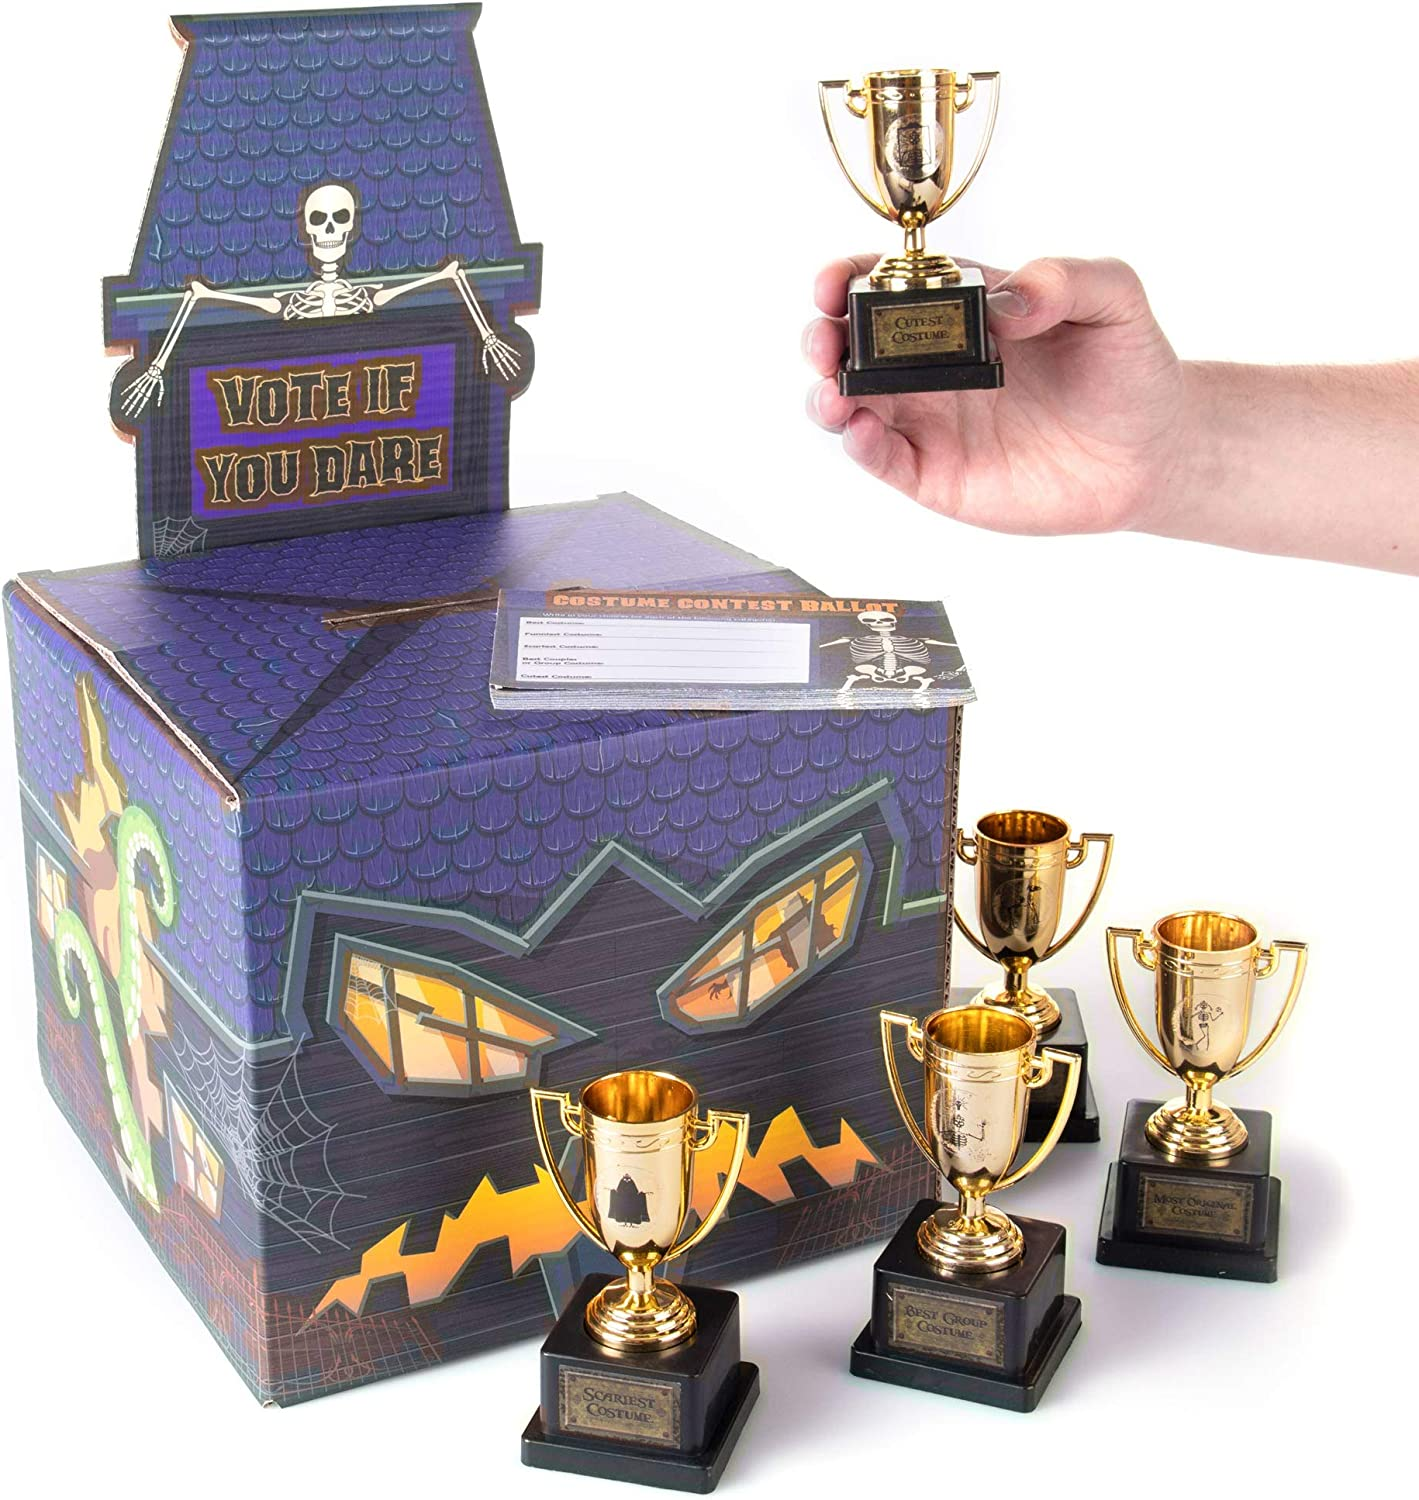 Halloween Costume Contest Party Bundle - Includes Ballot Box, 50 Ballot Voting Cards & 5 Gold Trophies - Fun Game, Decoration & Party Supplies for Home, Work, School & Bar Costume Parties Decor